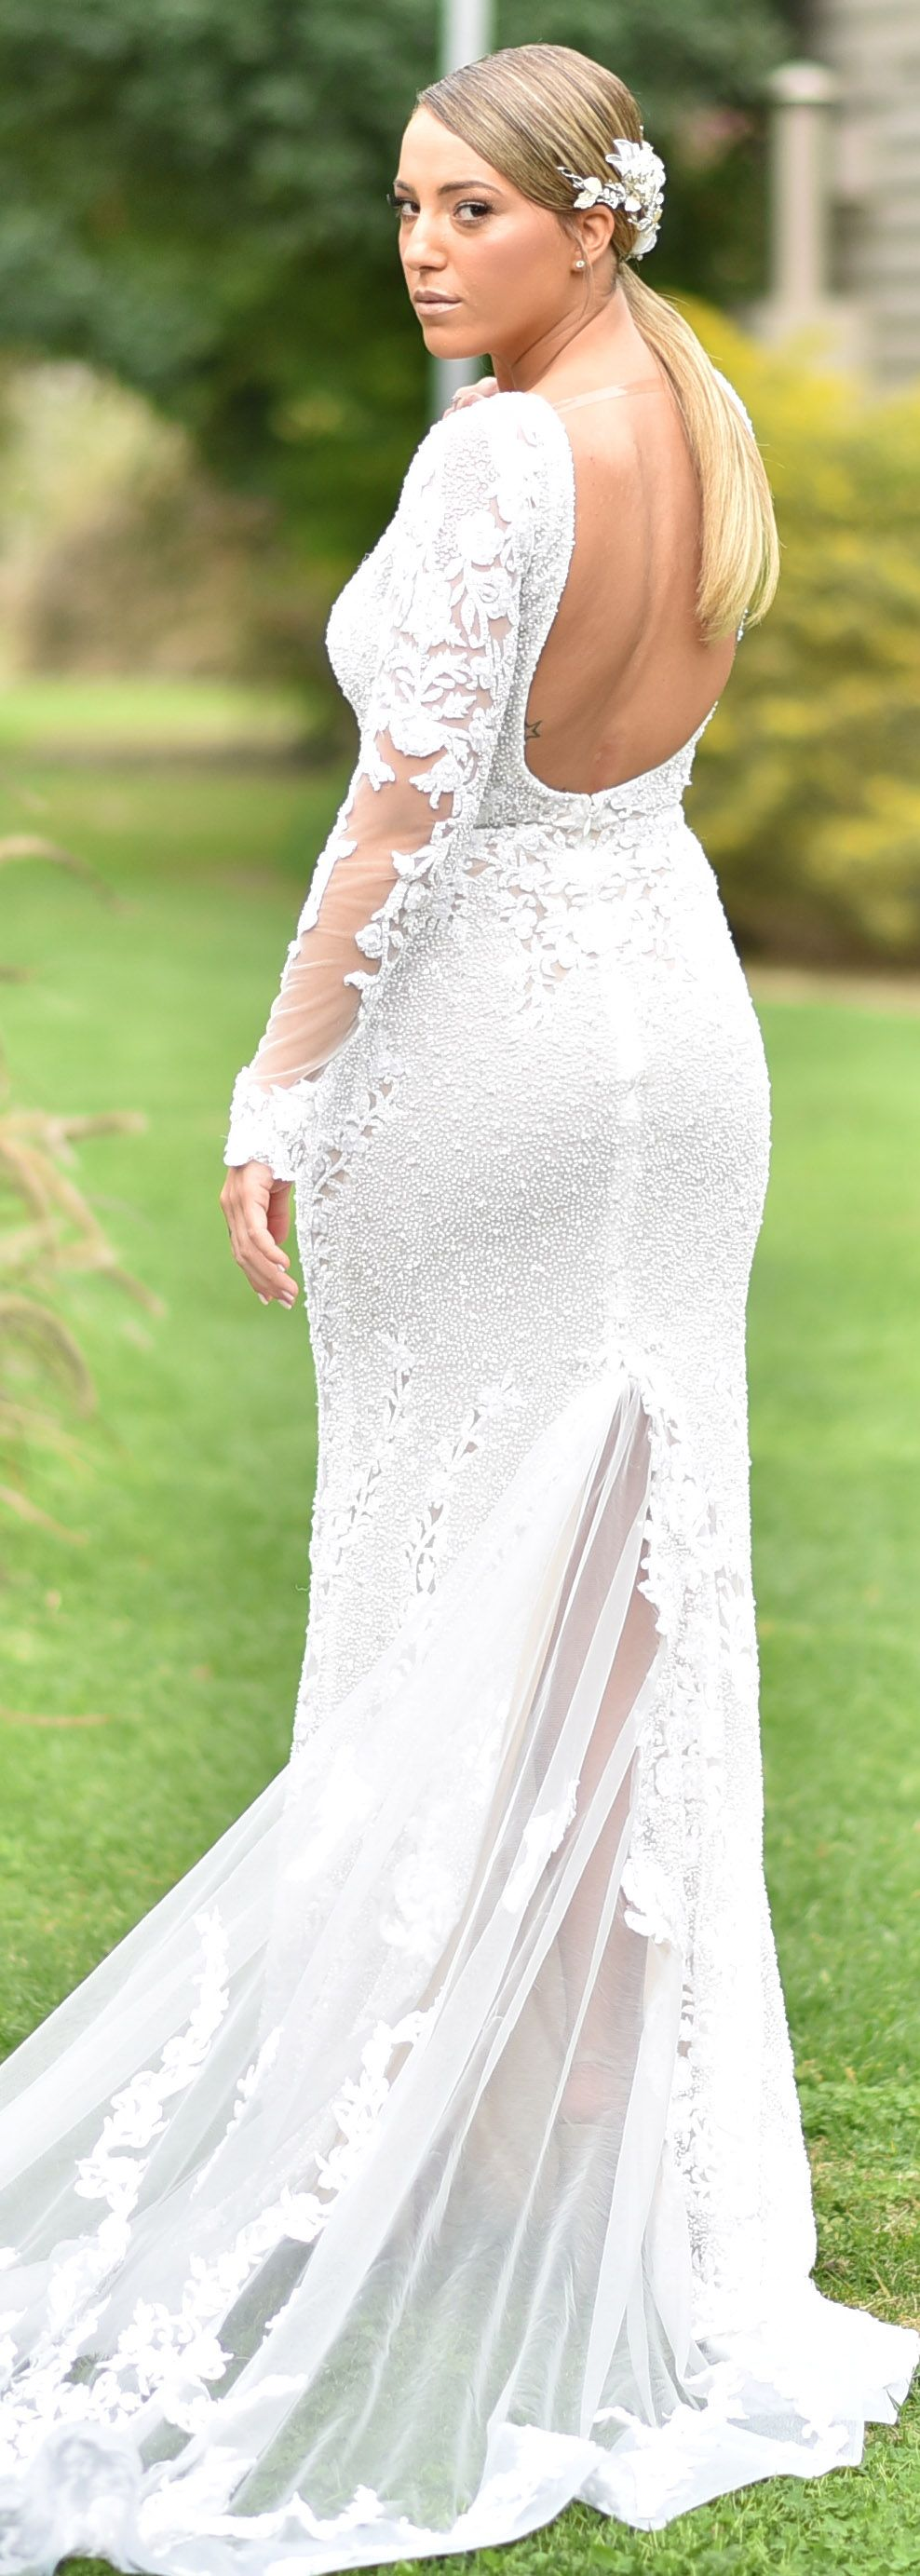 Berta Kim >> Berta Bride Kim Oster Looking Lovely In Berta Style 17 135 Berta